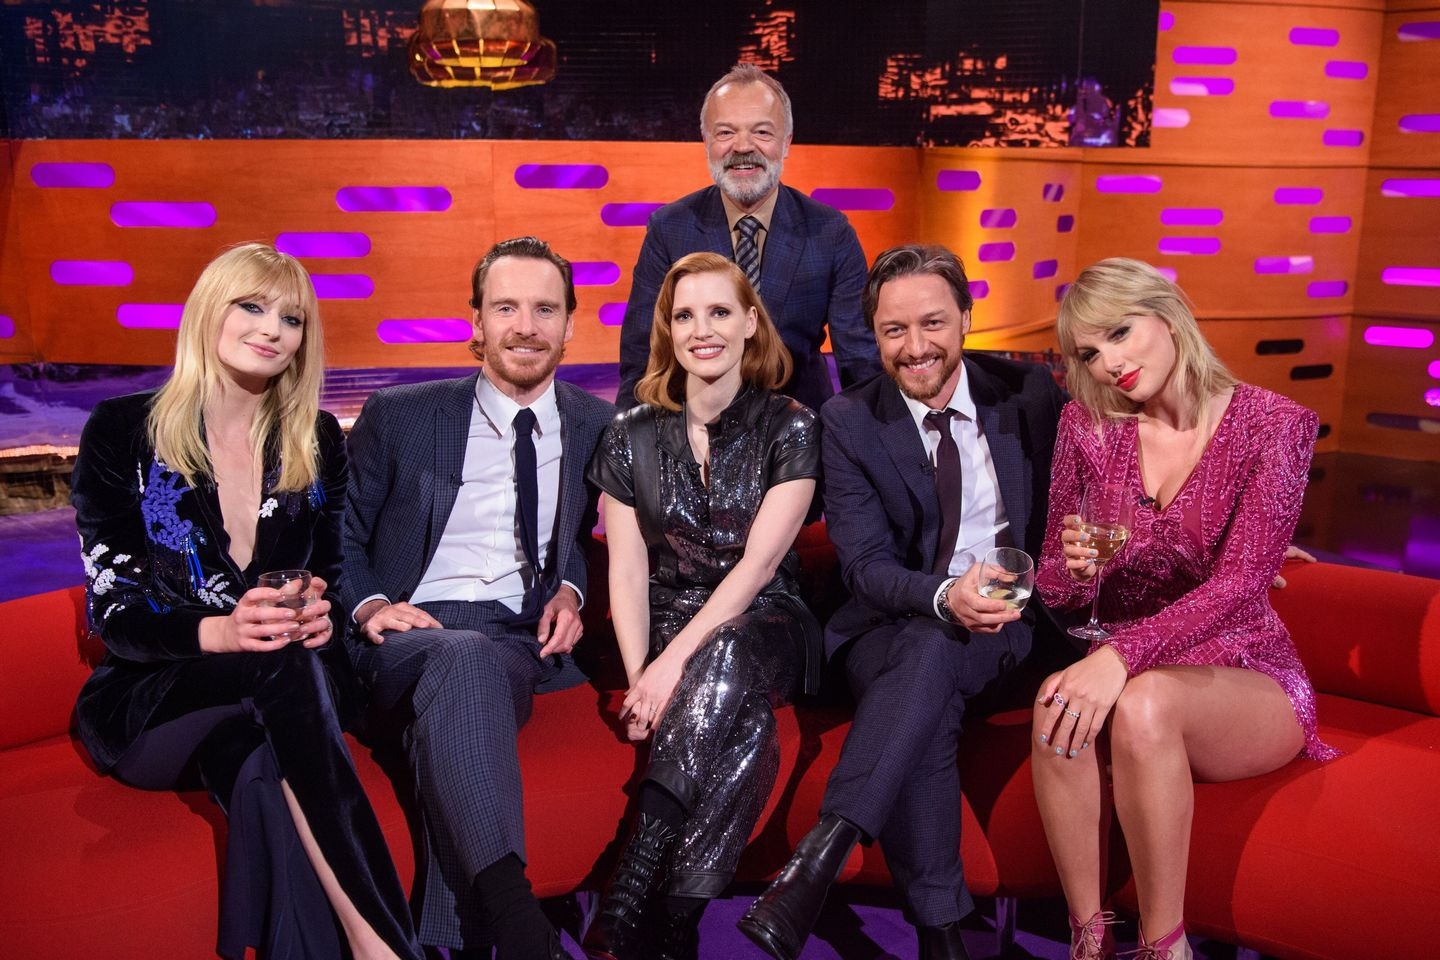 Jessica Chastain and Taylor Swift with X Men crew at The Graham Norton Show